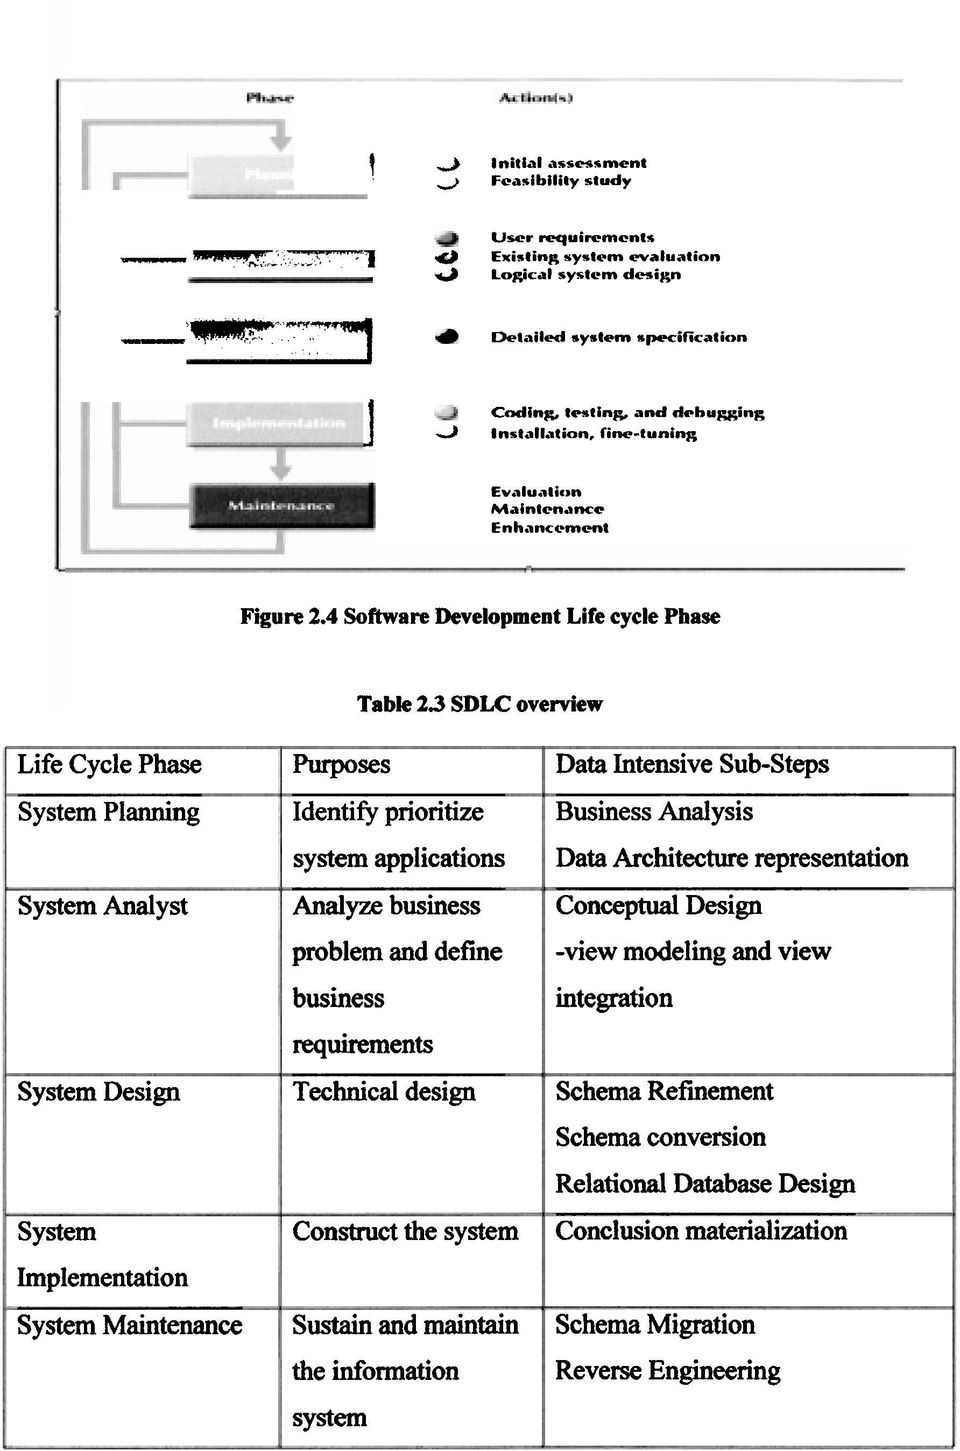 4 Software Development Life cycle Phase Table 23 SDLC overview Life Cycle Phase System Planning System Analyst System Design System Implementation System Maintenance putposes Identify prioritize